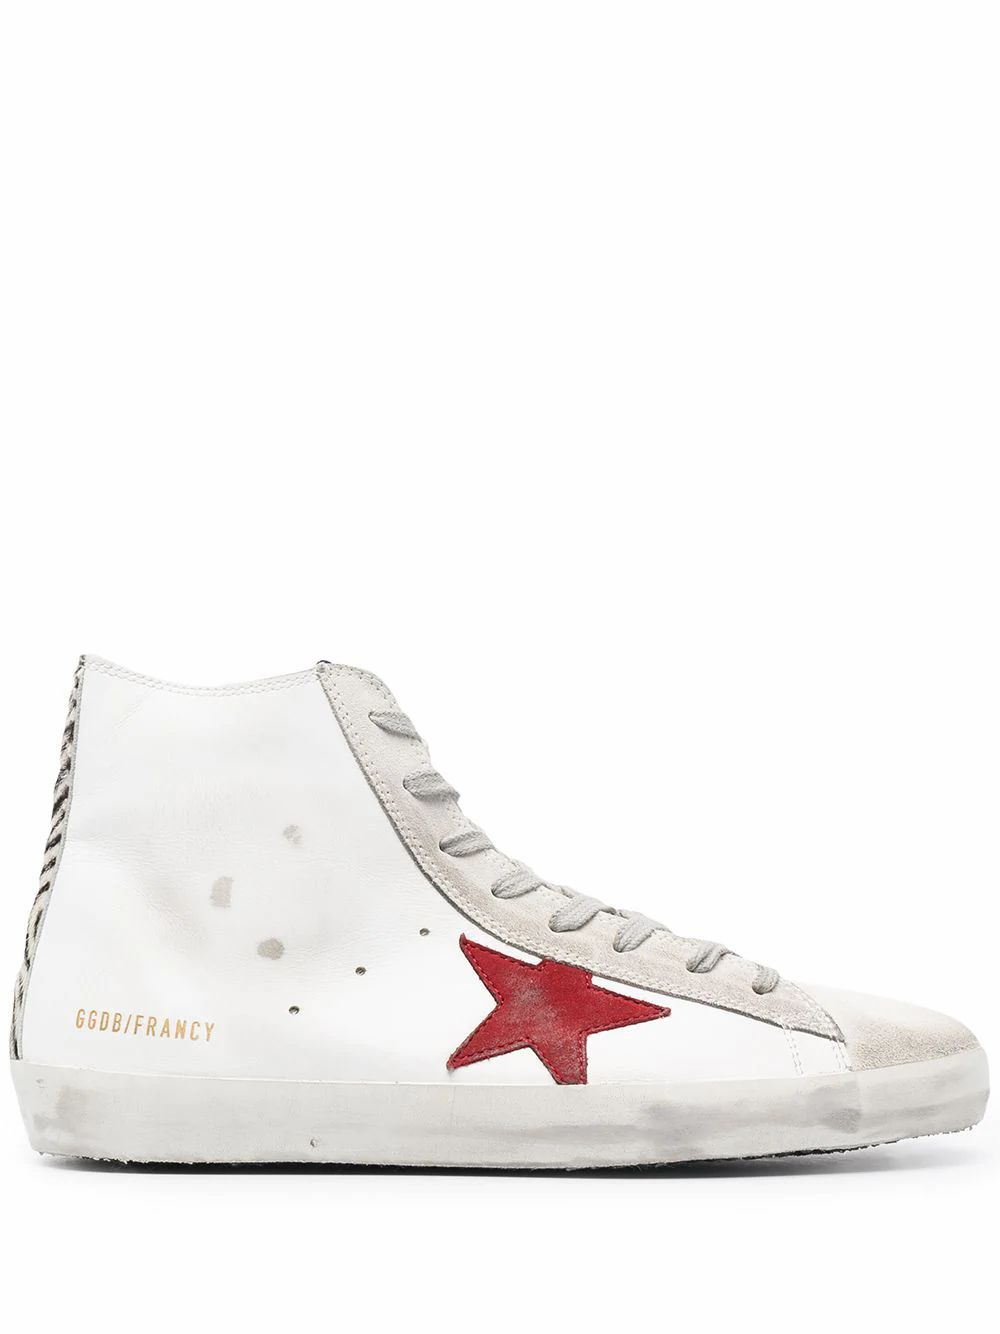 Golden Goose GOLDEN GOOSE MEN'S WHITE LEATHER HI TOP SNEAKERS